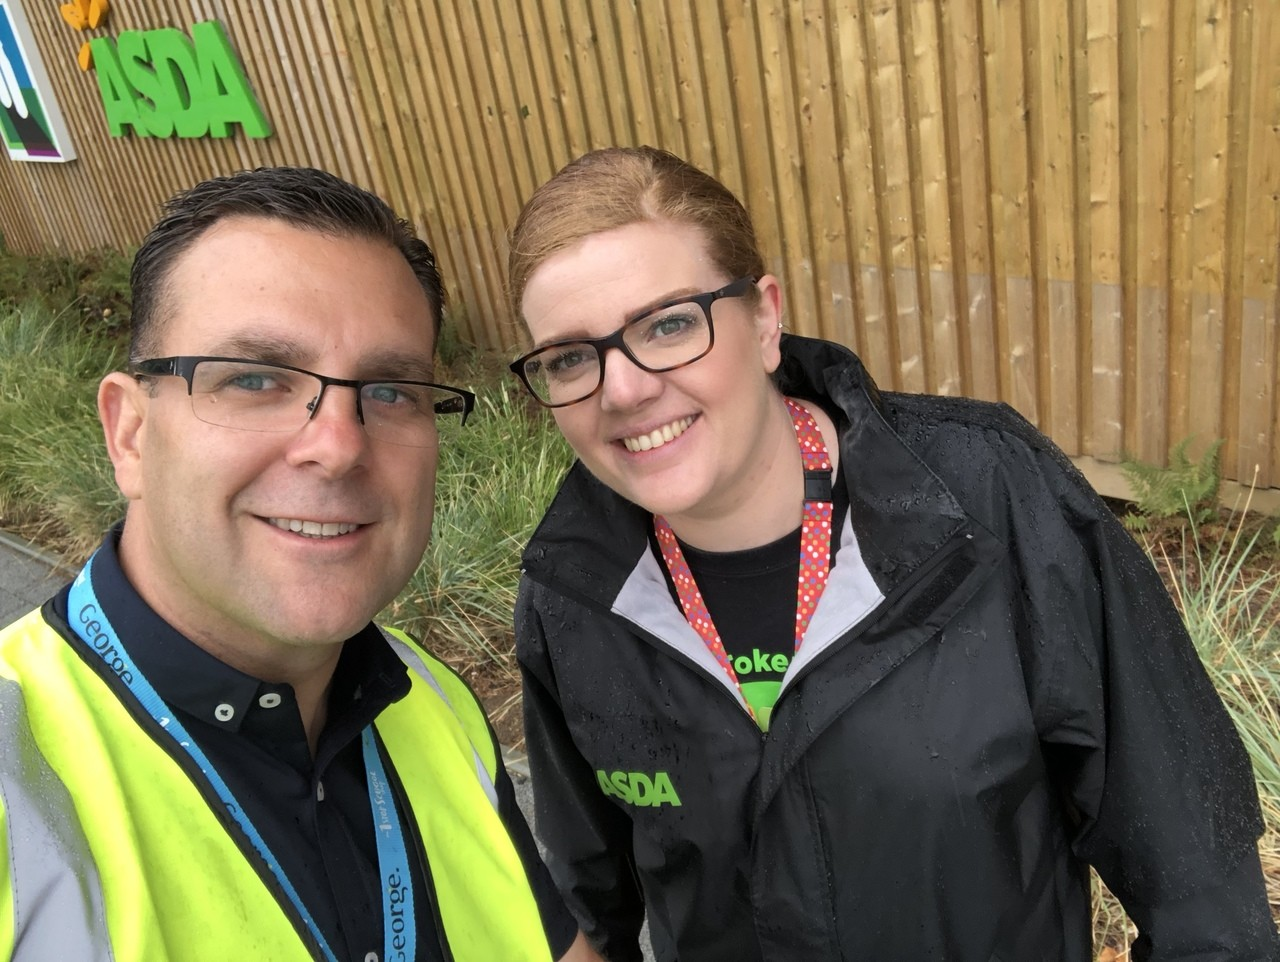 Asda South Ruislip colleagues Lee and Laura